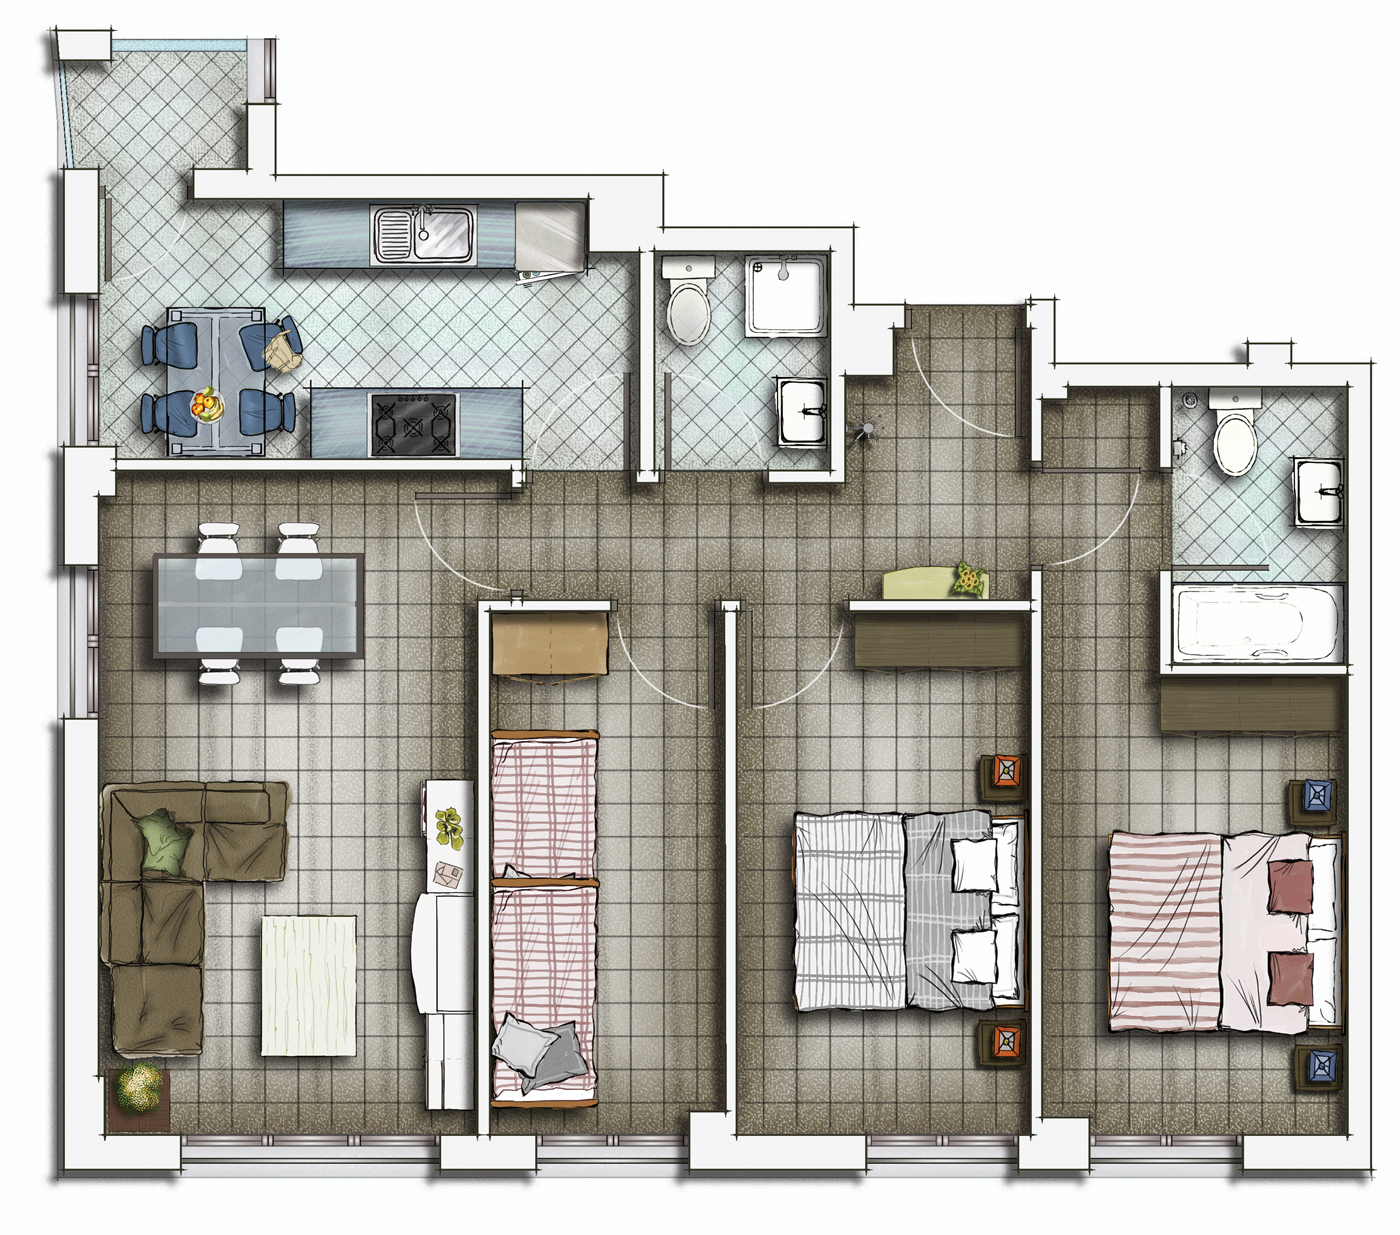 3d-studio-ho-chi-minh-private-residential-house-2d-floor-plans-6